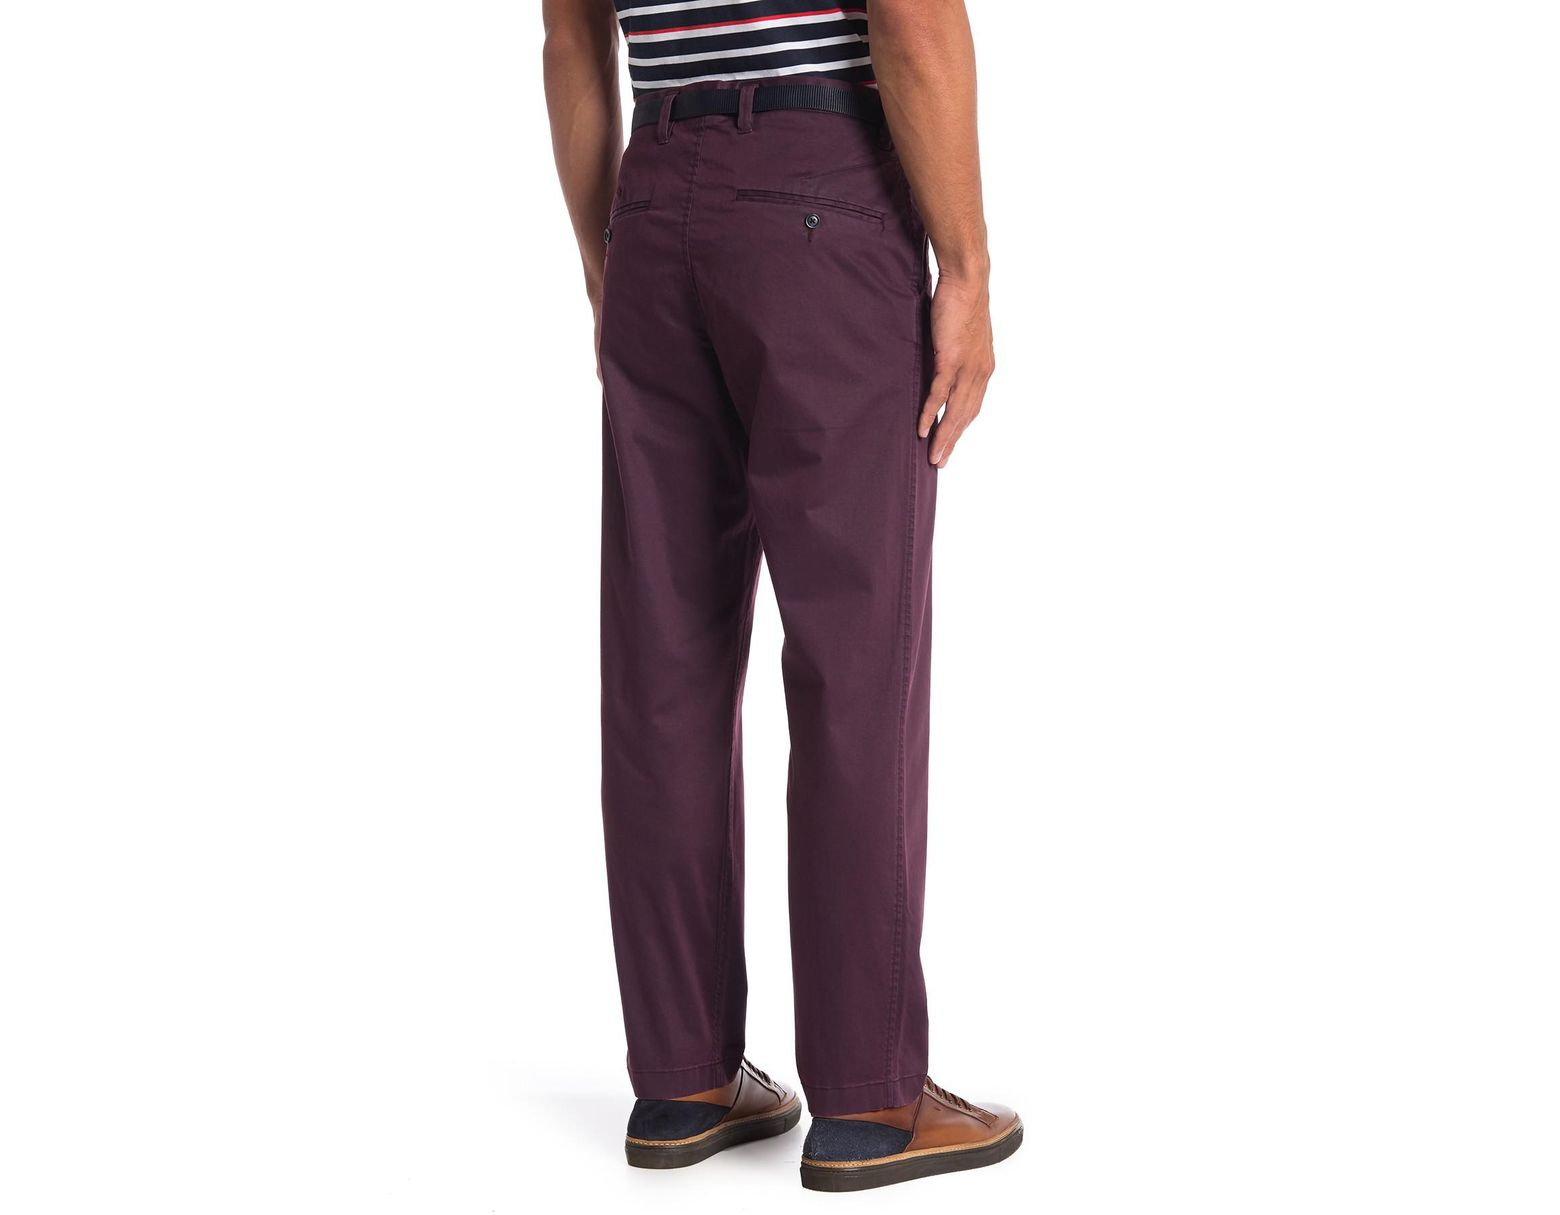 8f632a0c62 Perry Ellis Dyed Cargo Pants in Purple for Men - Lyst